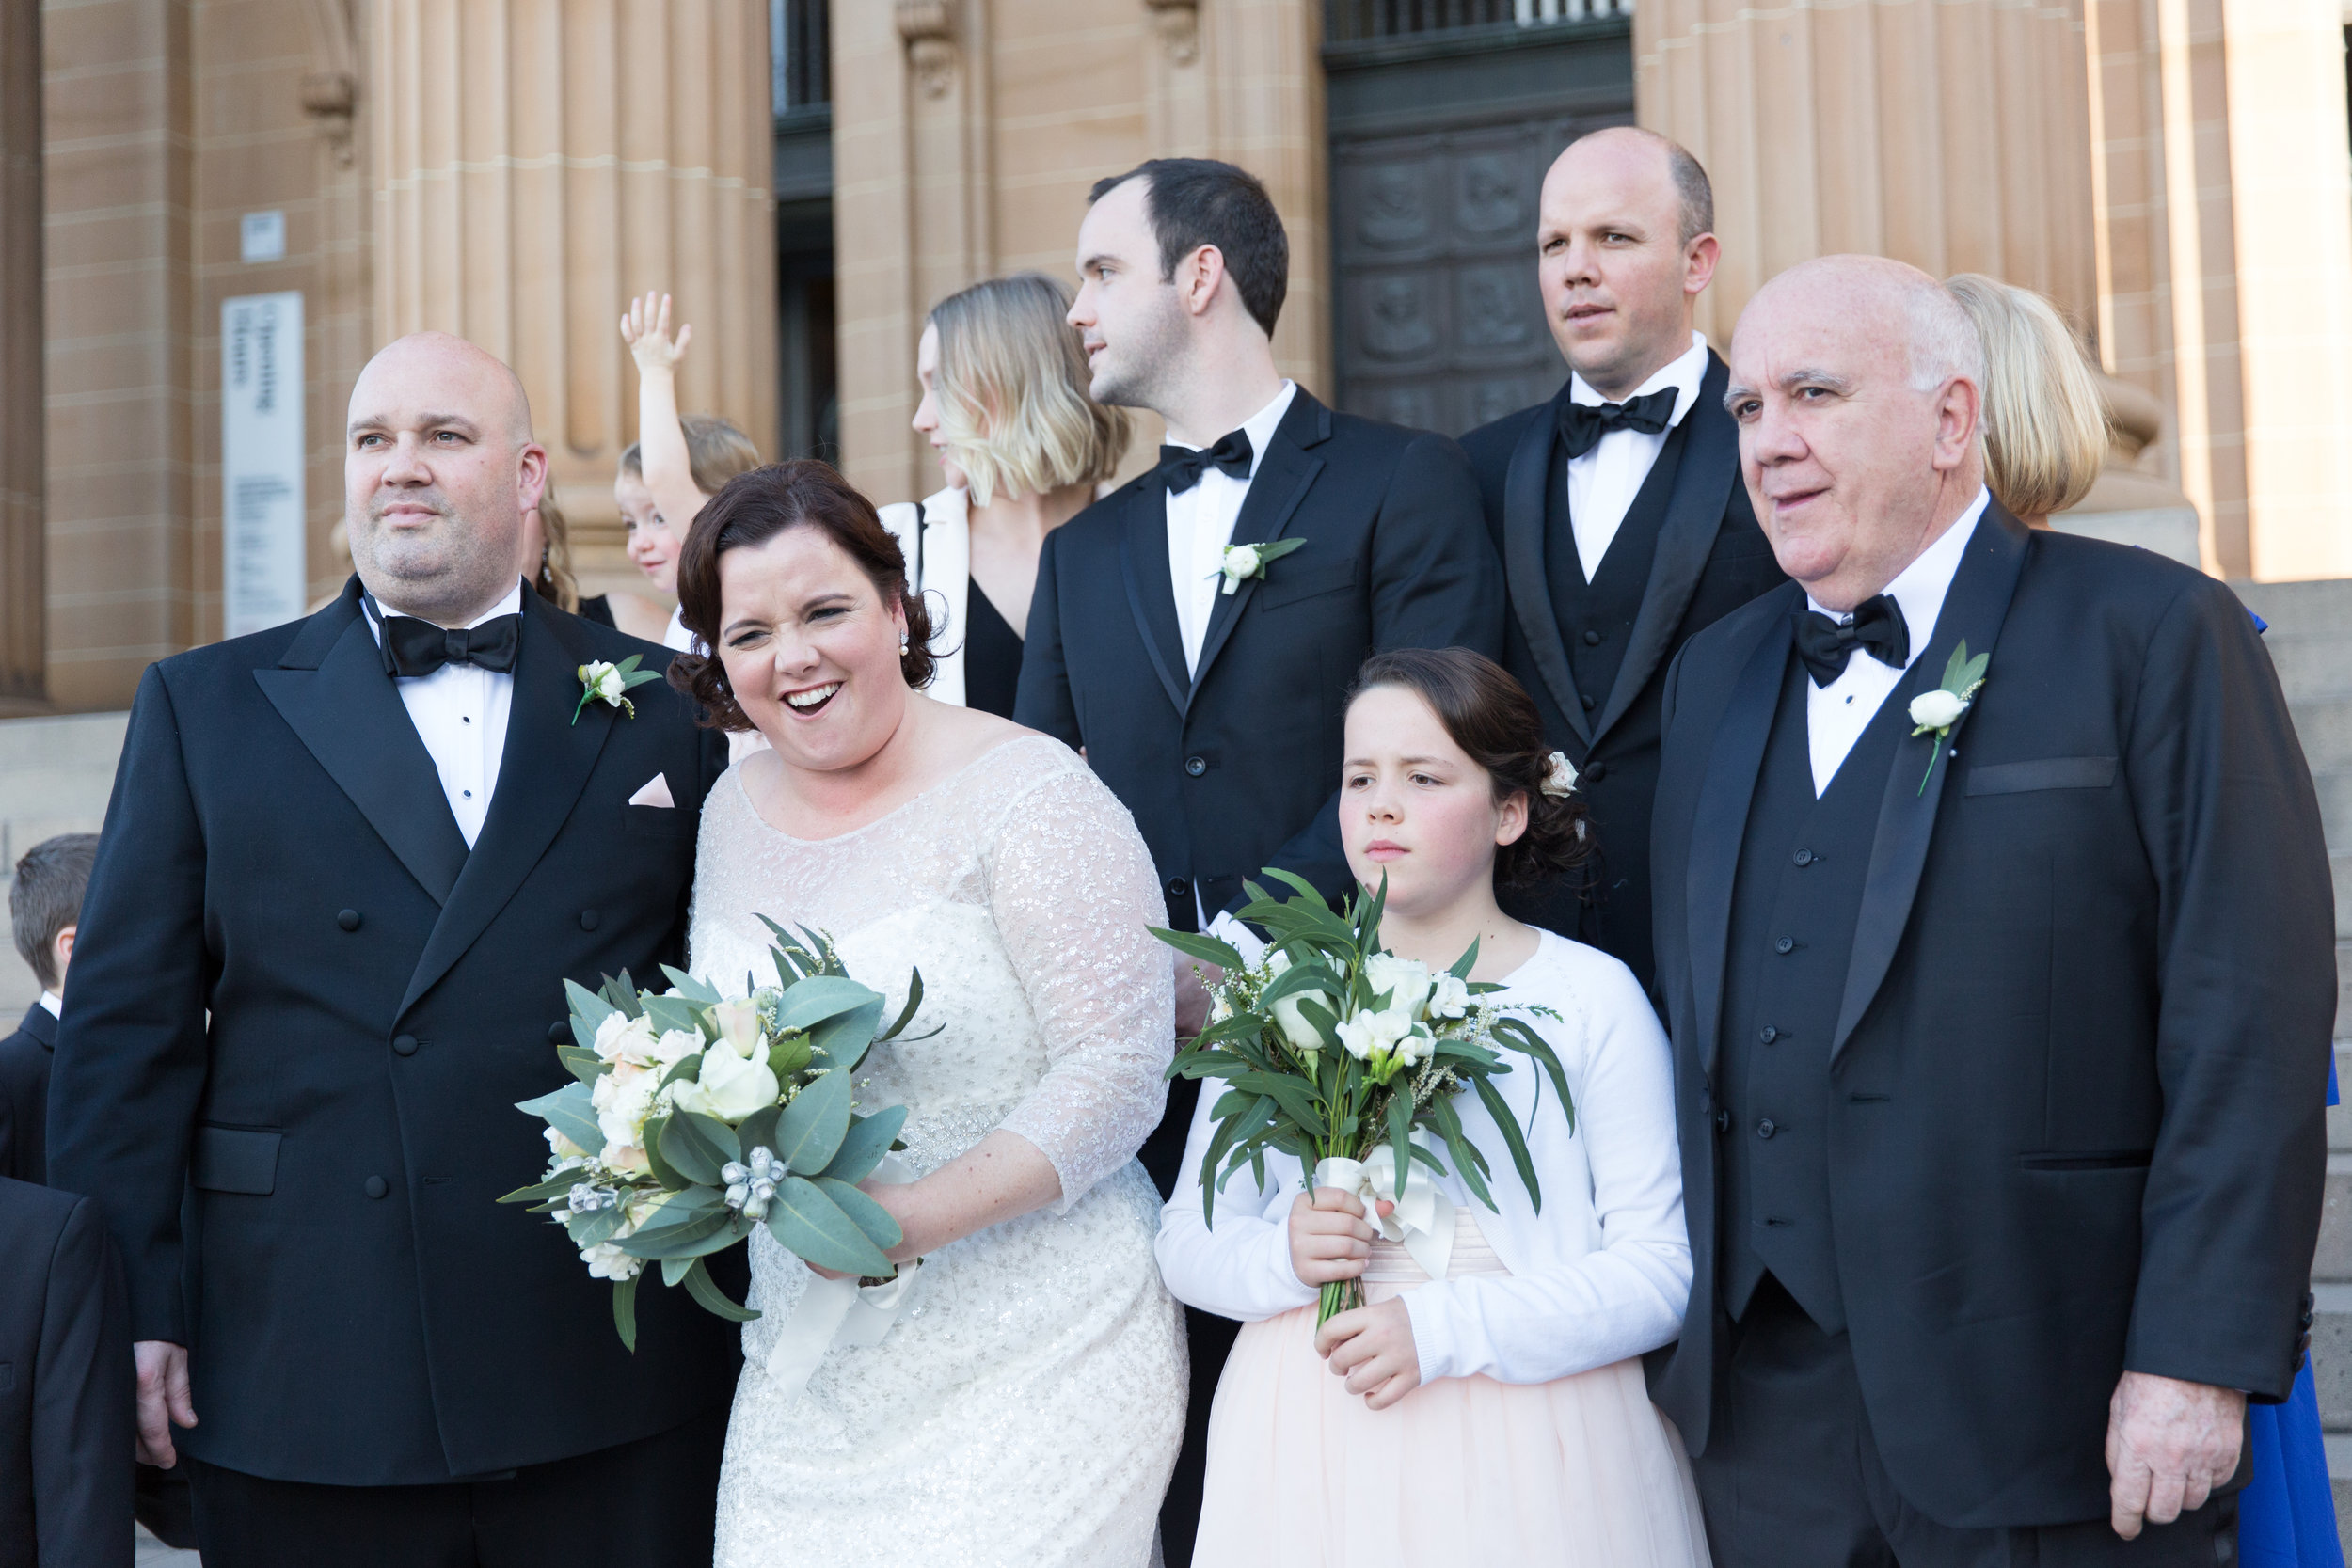 PHOTOGRAPHED WITH LOVE CANDID WEDDING PHOTOGRAPHER KIRRIBILLI